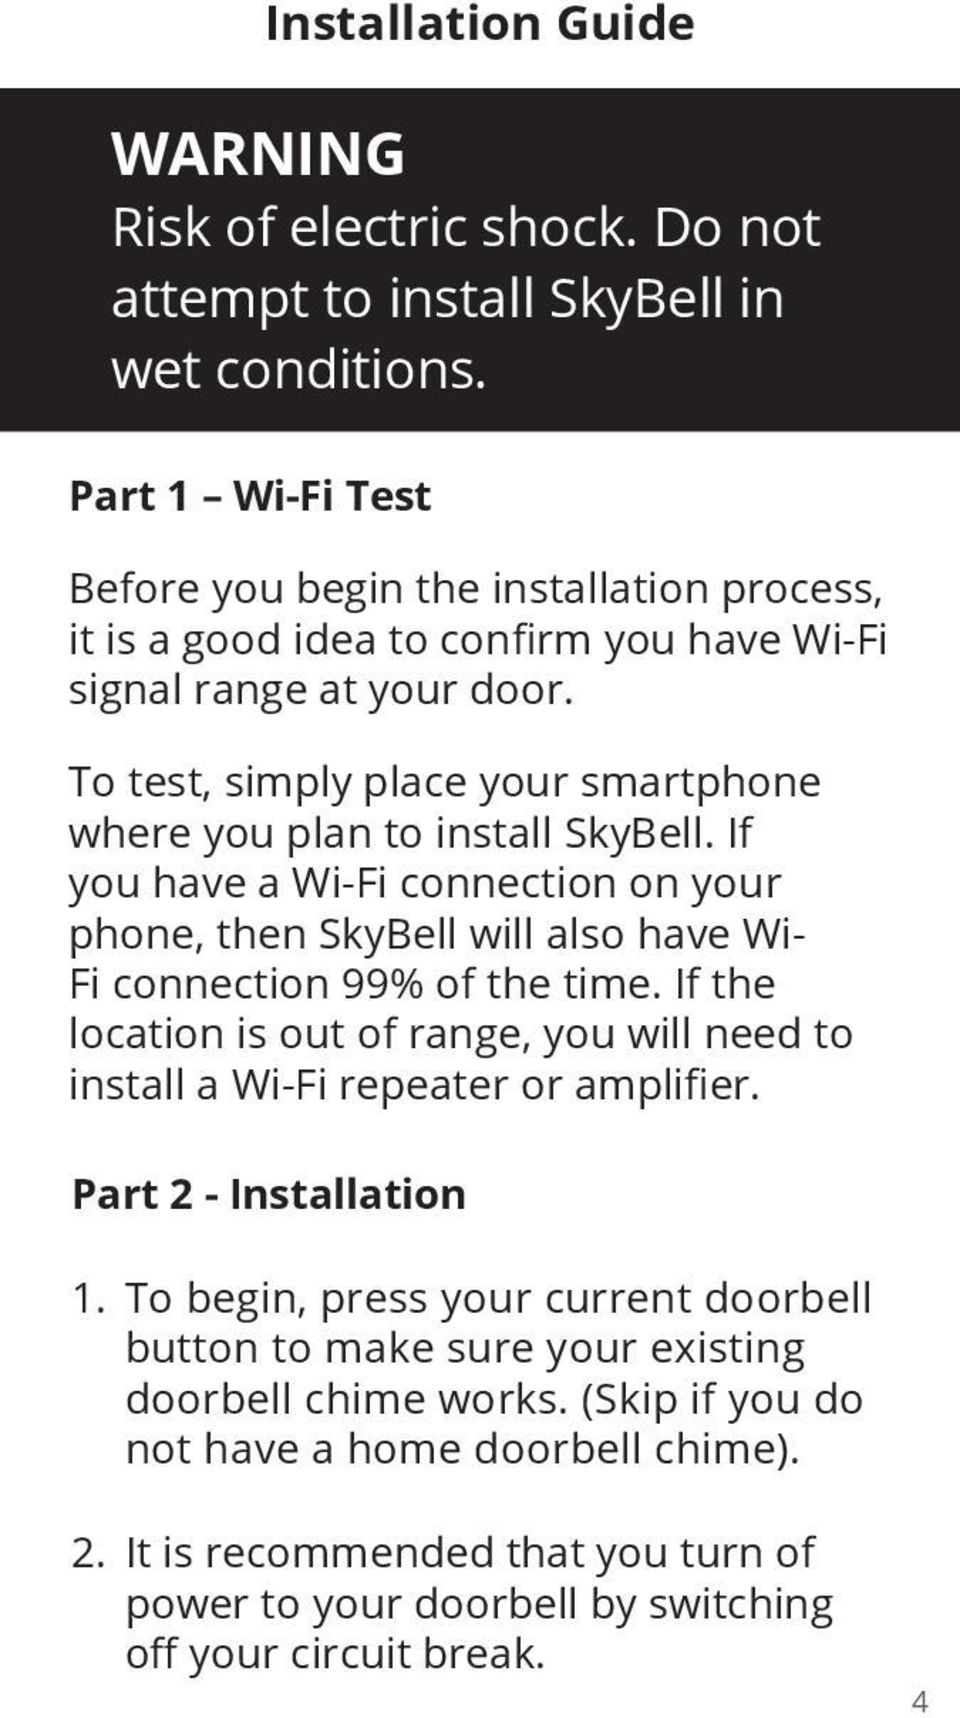 Installation Starting Guide Pdf Wiring Doorbell Chime To Test Simply Place Your Smartphone Where You Plan Install Skybell If